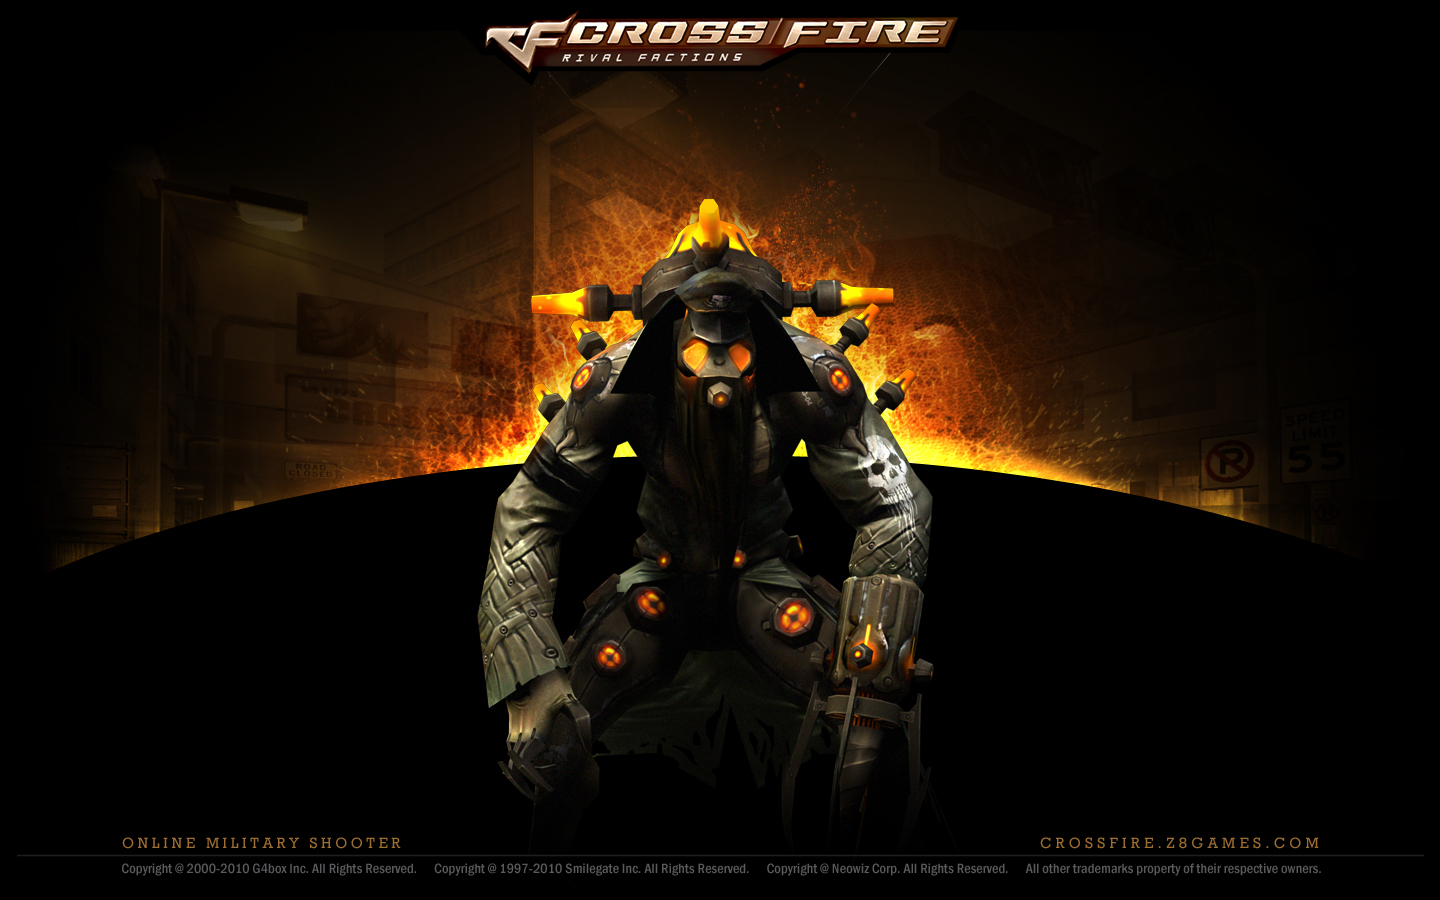 wallpaper crossfire collection 2011 - photo #17